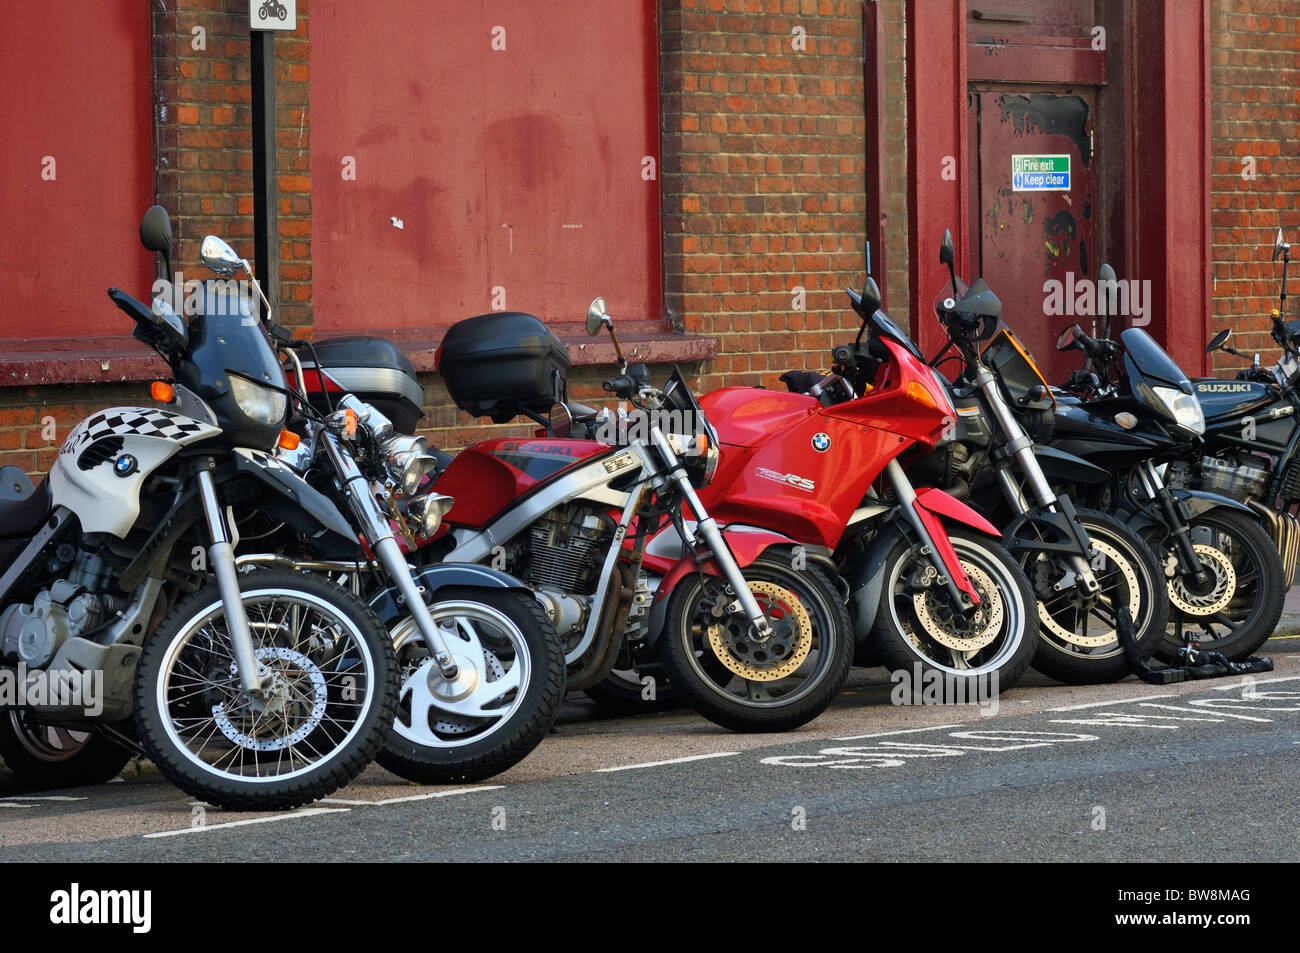 Motorcycle parking bay - Stock Image